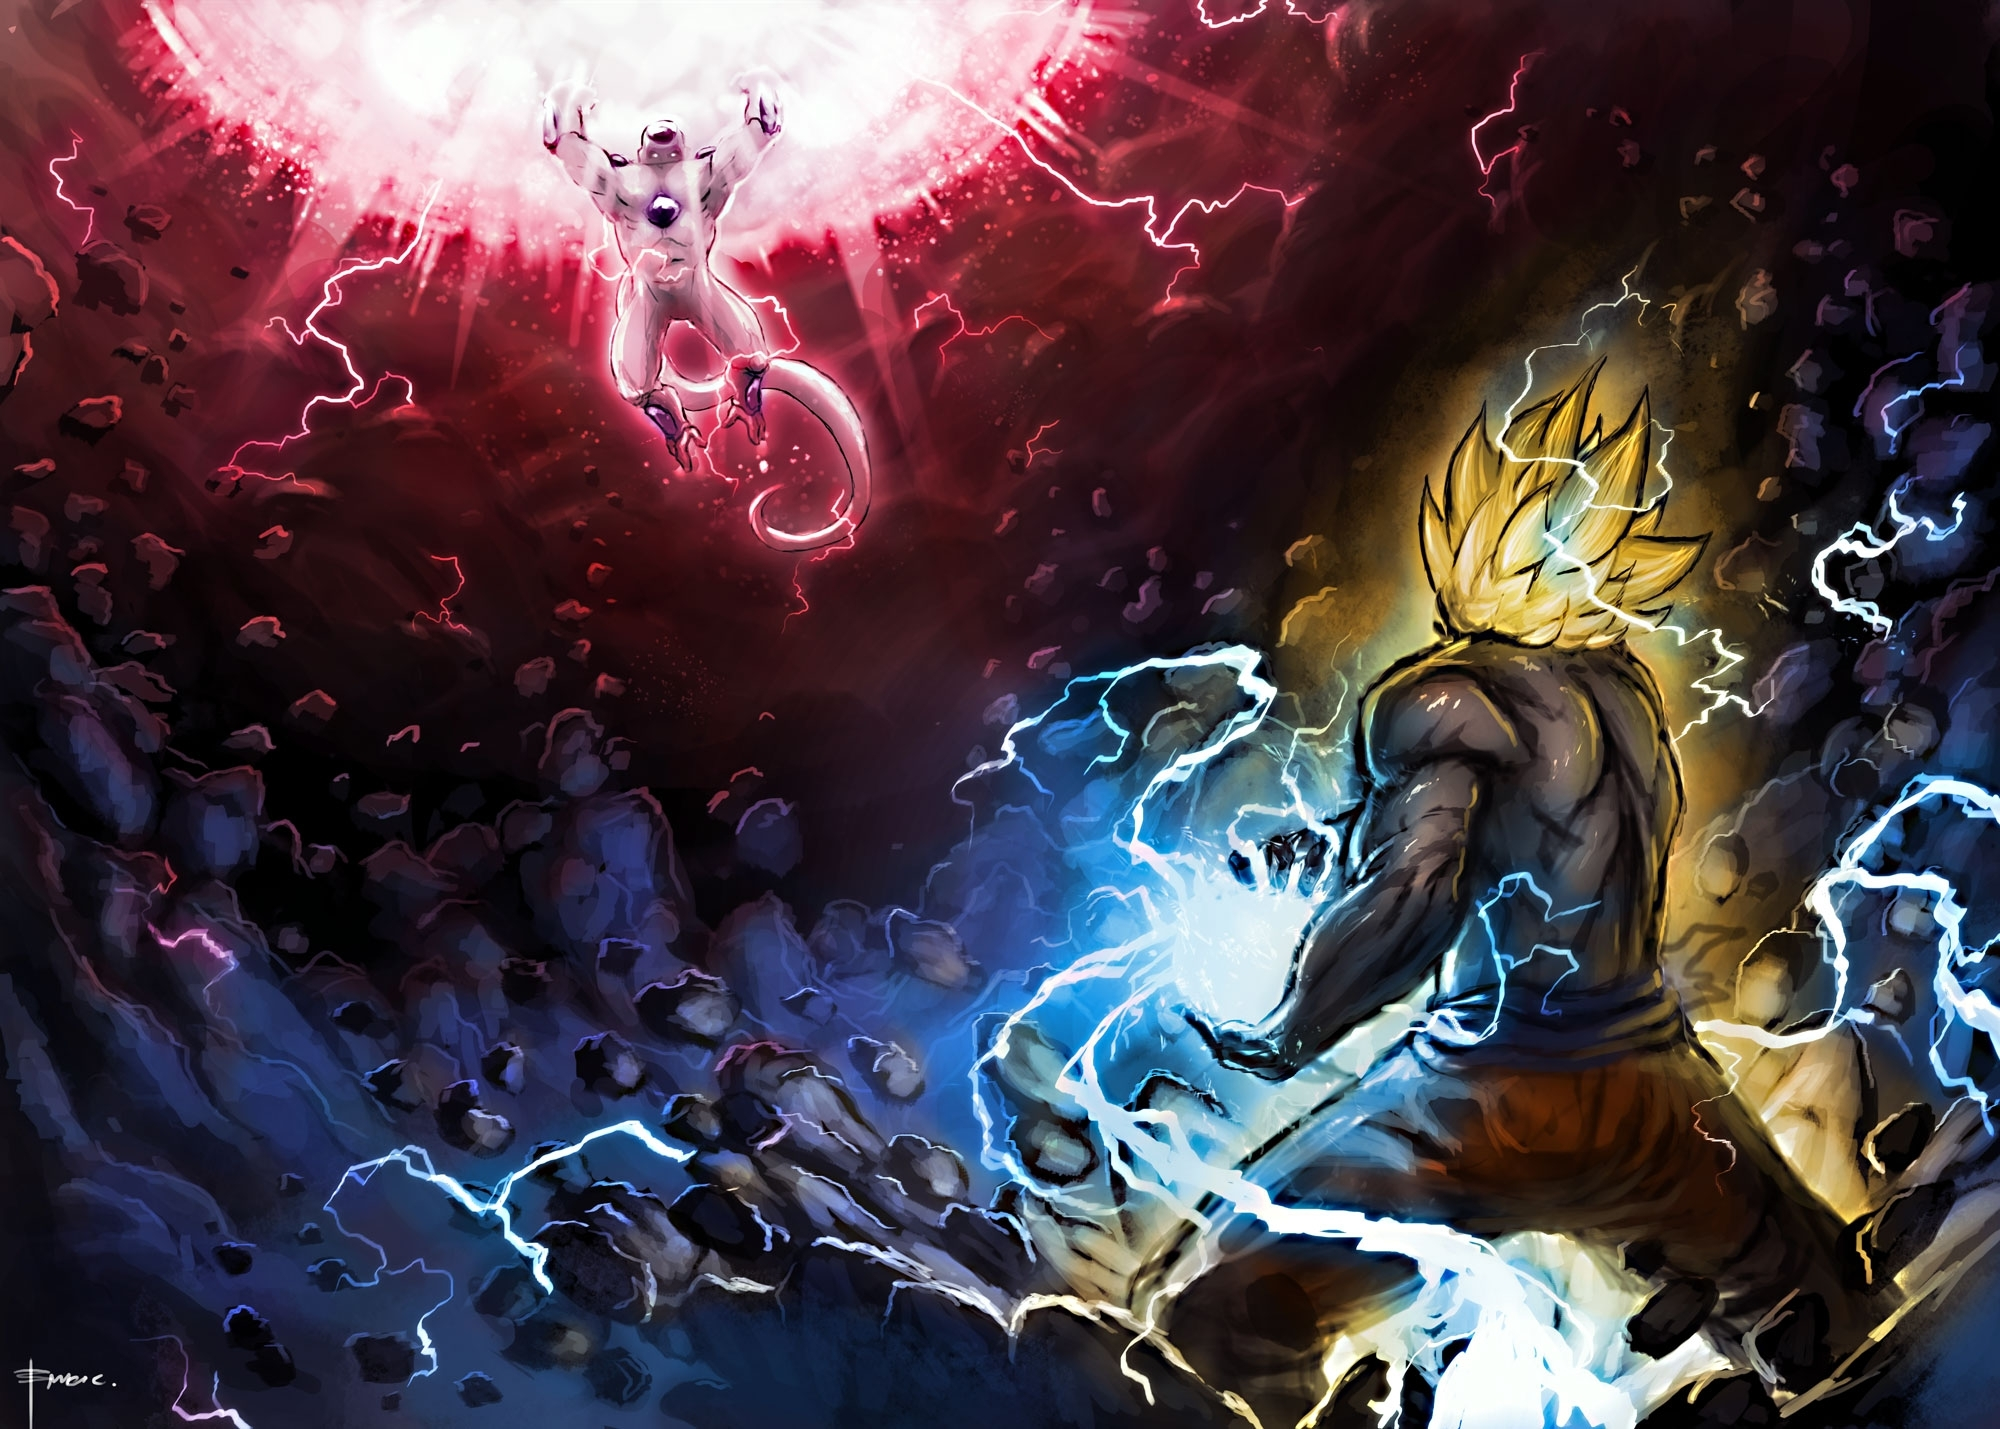 goku vs. frieza full hd wallpaper and background image | 2000x1429